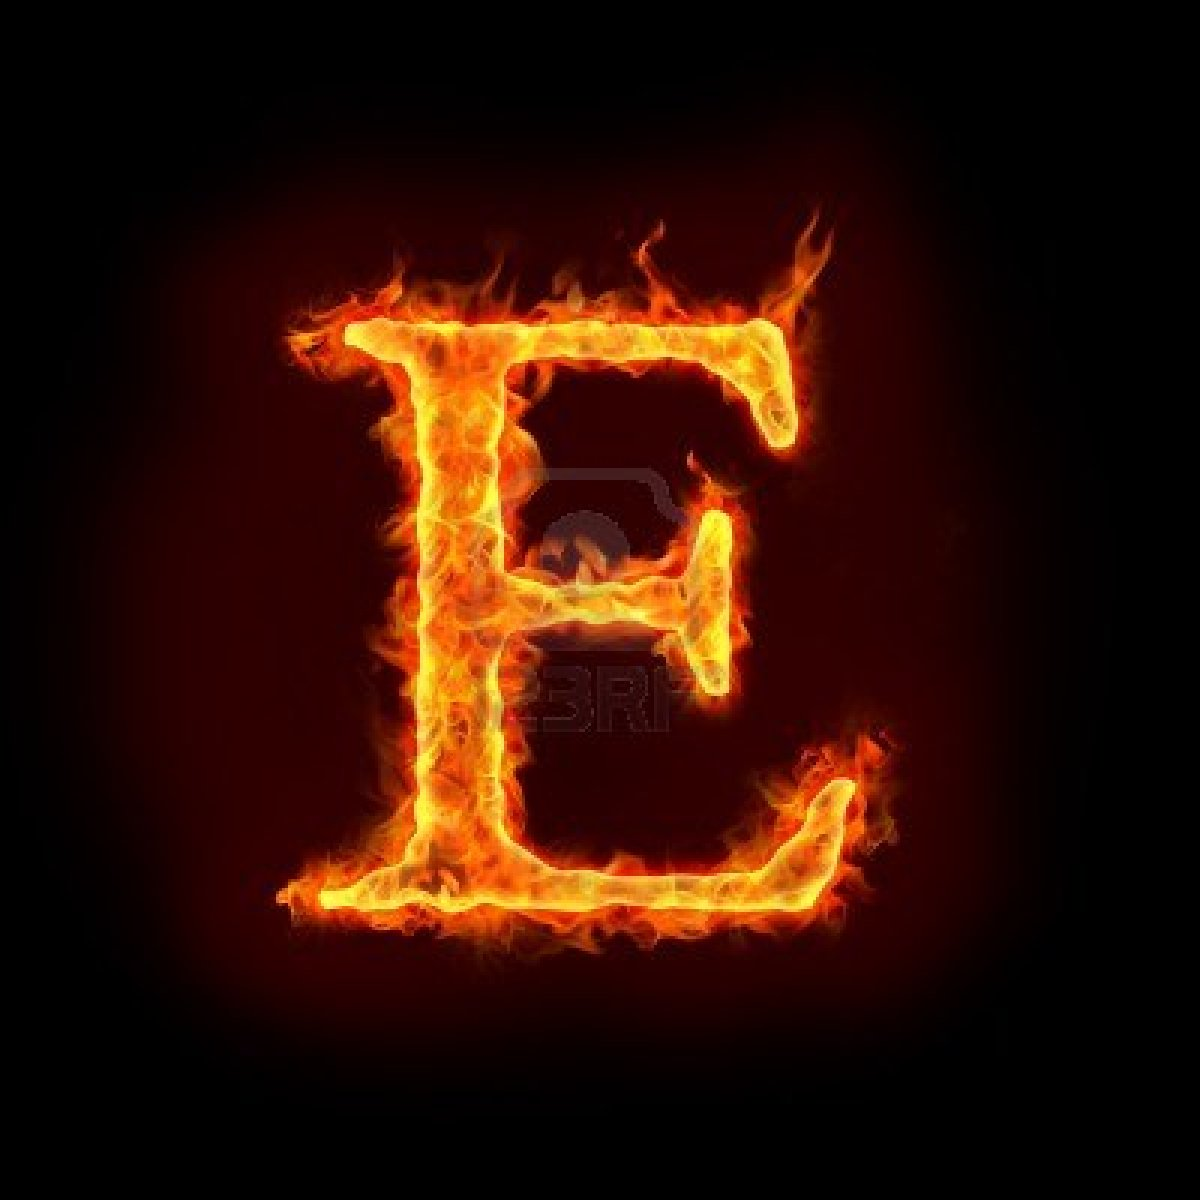 10232901 Fire Alphabets In Flame Letter E